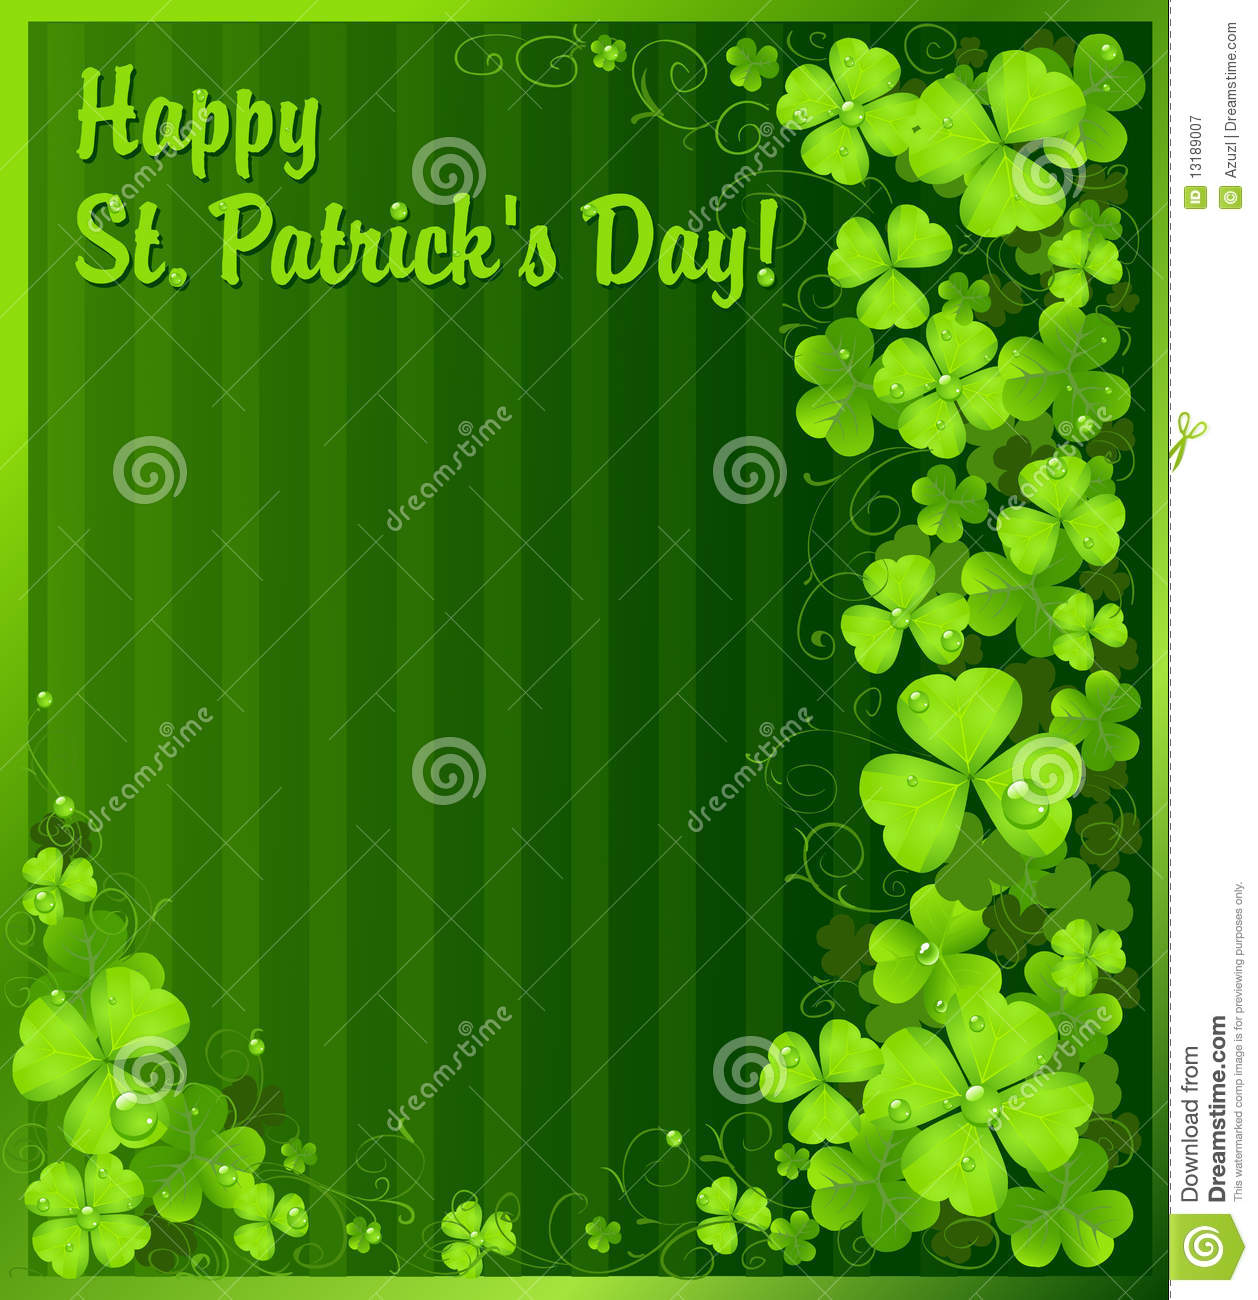 Illustration Decoration St. Patrick's Day Green Clover Background Stock Vector